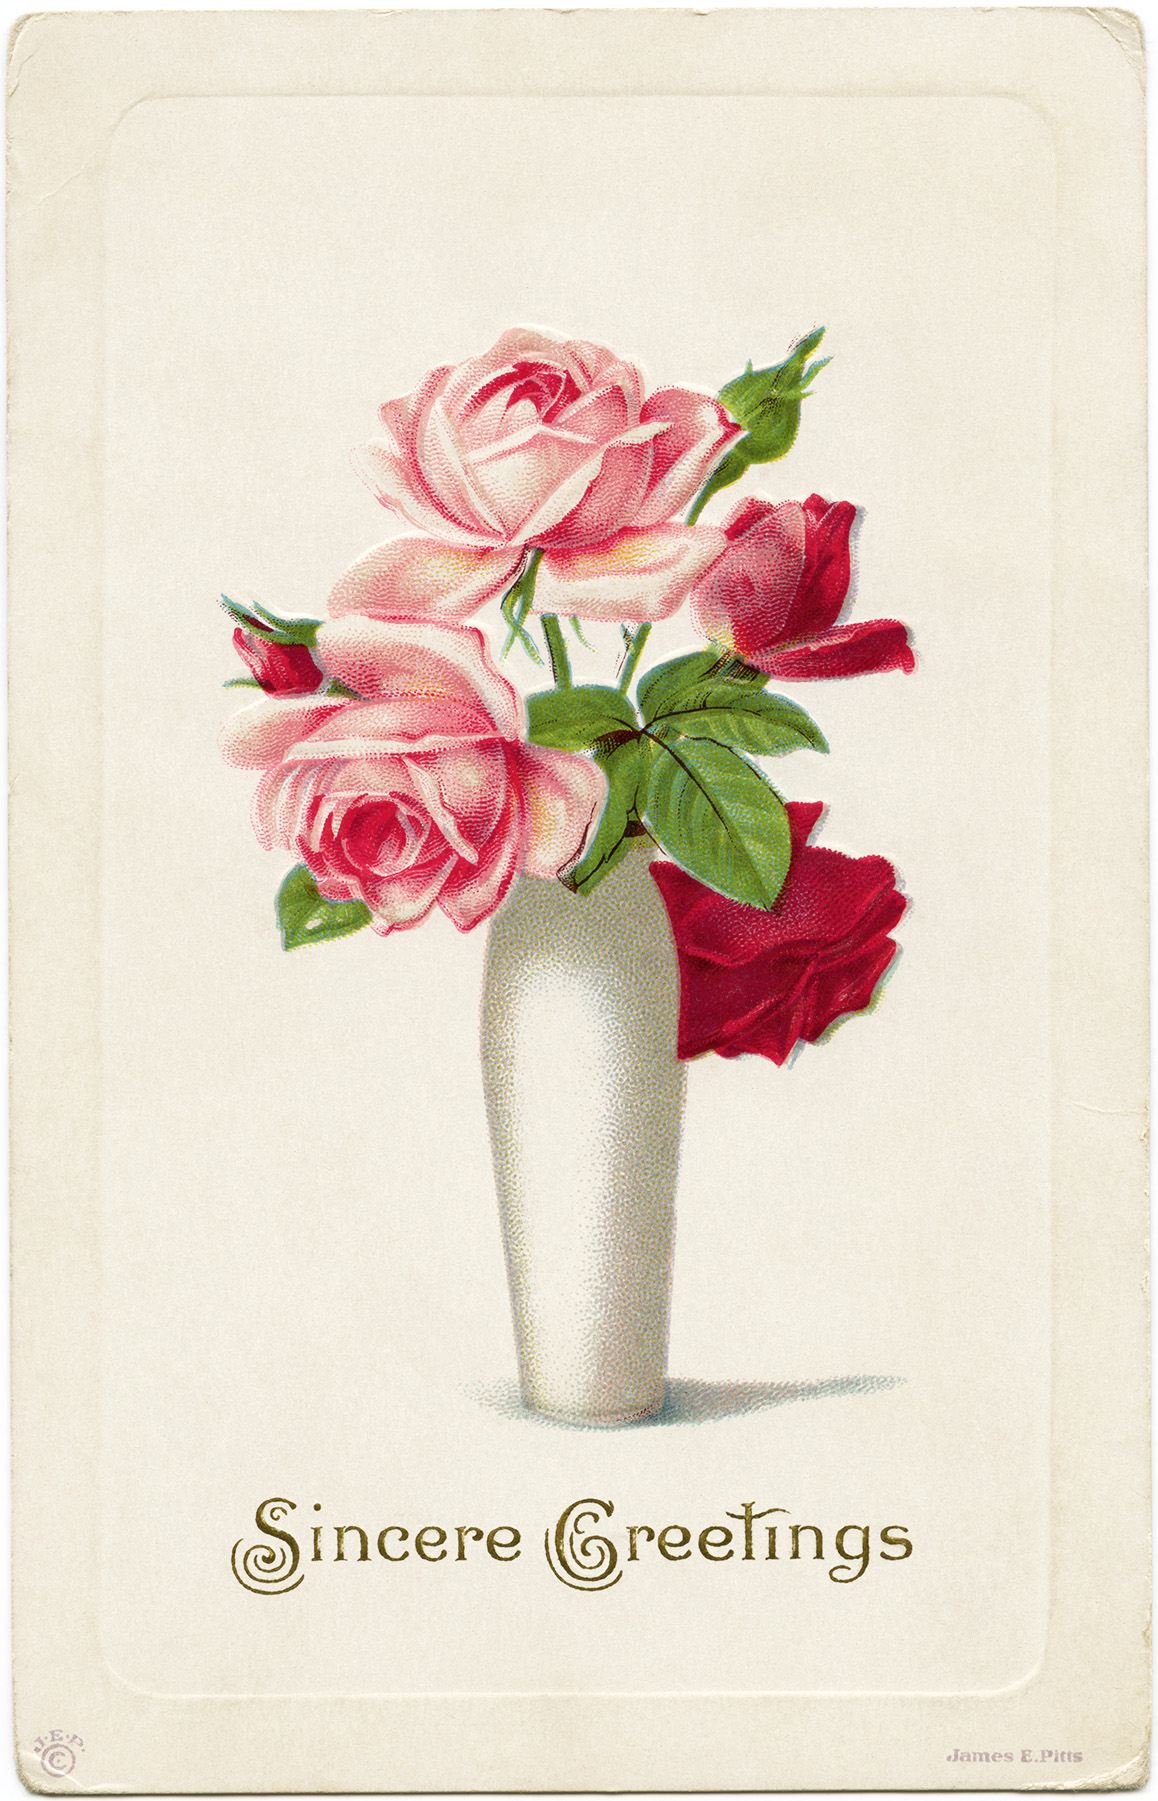 vintage roses clipart, roses in vase printable, old postcard flowers, digital floral graphics, red pink rose image